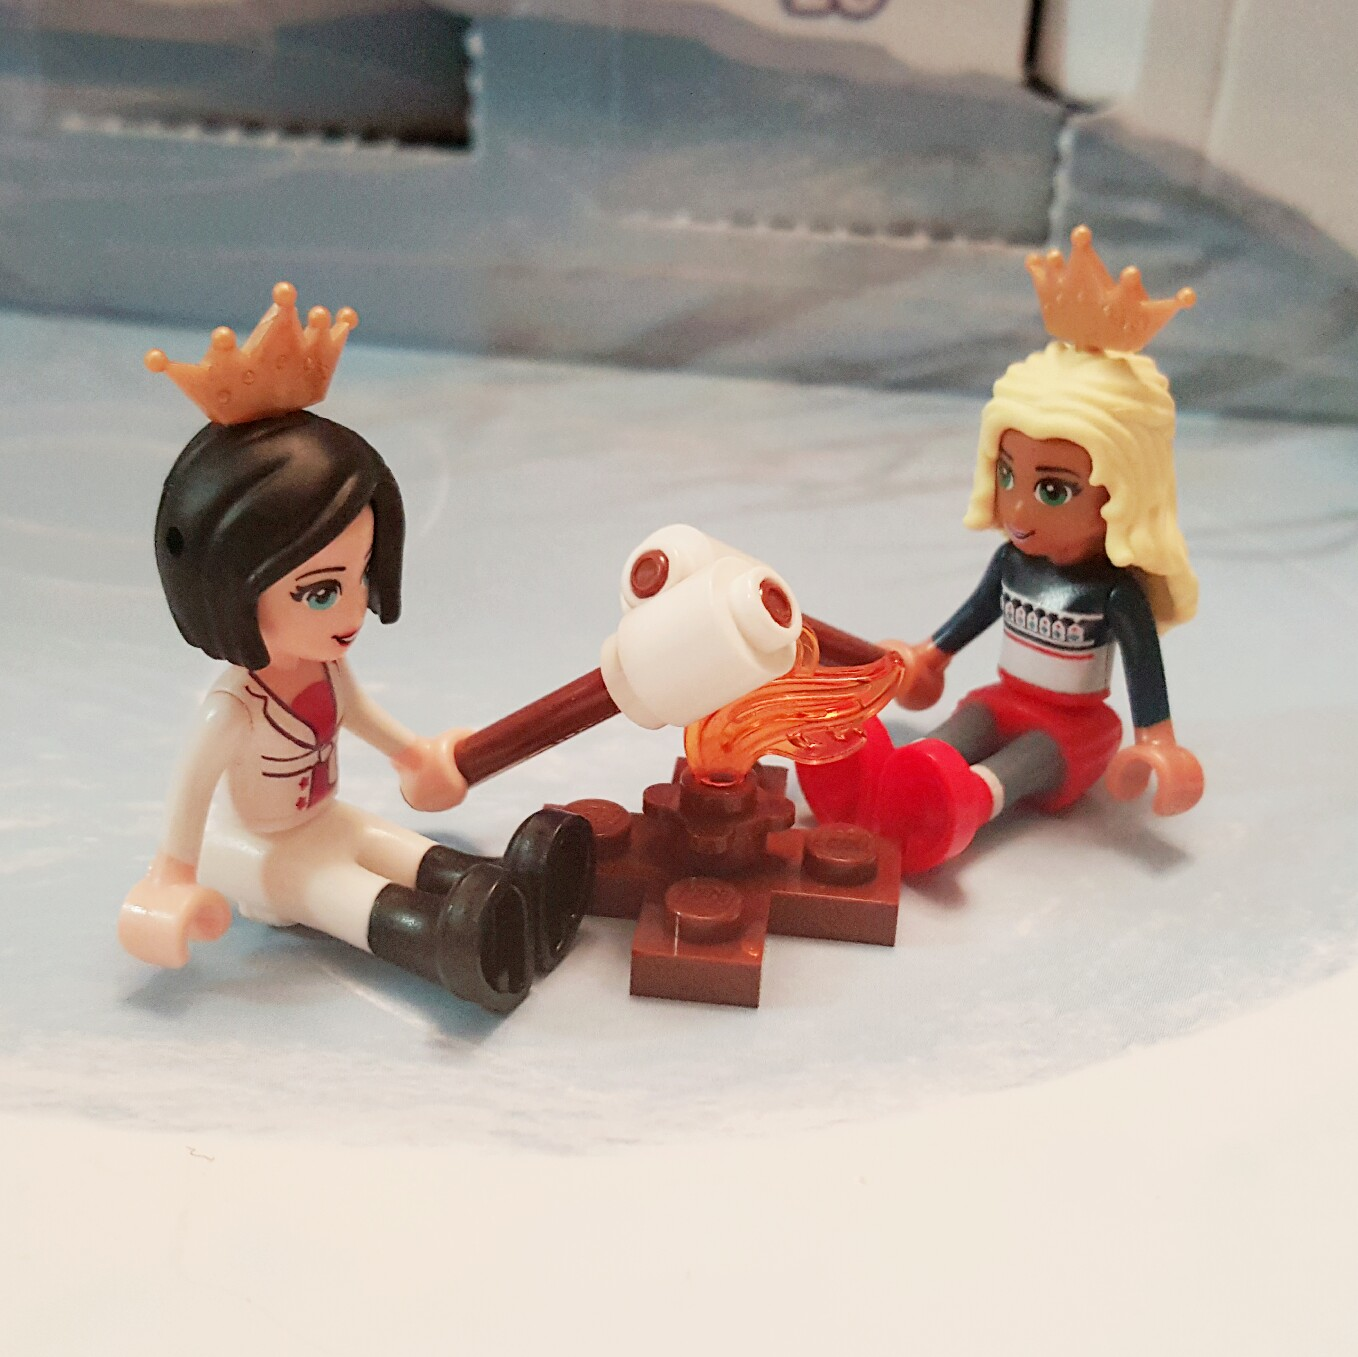 """""""Let's make S'mores!"""" - Day 21 Fire Pit & Marshmallows on Sticks from LEGO Friends Advent Calendar"""